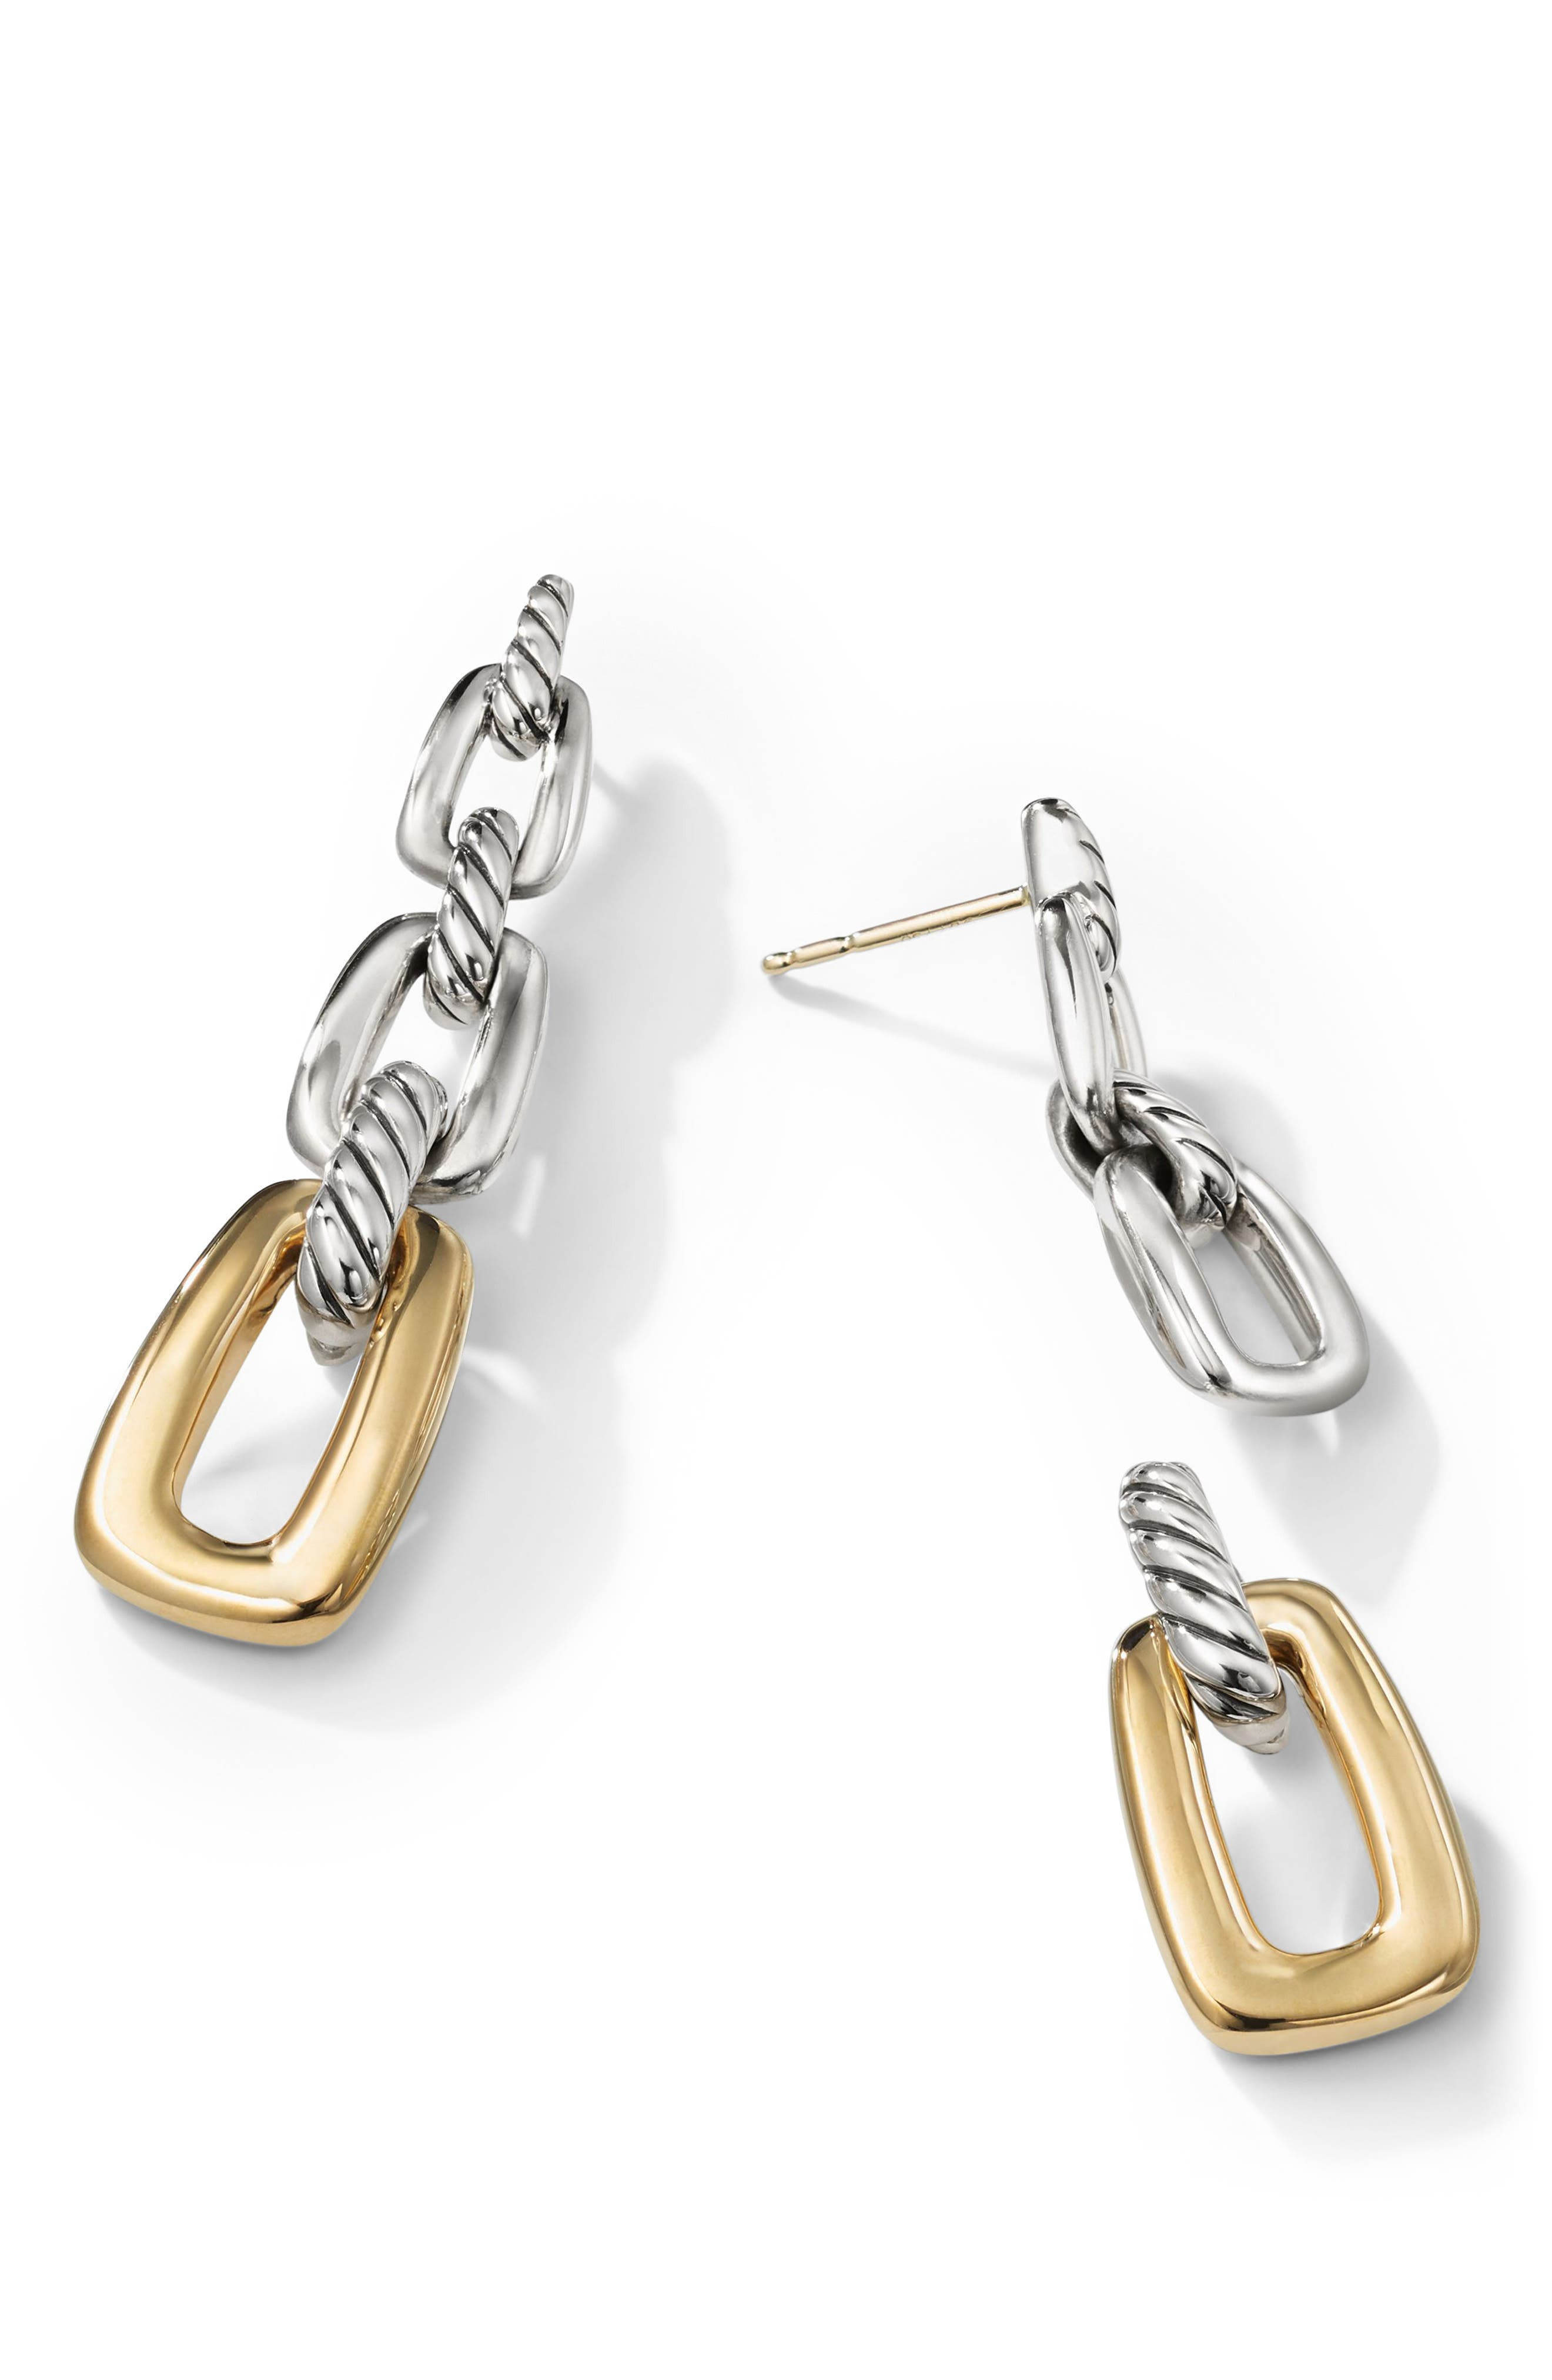 DAVID YURMAN, Wellesley Link Drop Earrings with 18k Gold, Alternate thumbnail 2, color, 18K YELLOW GOLD/ SILVER